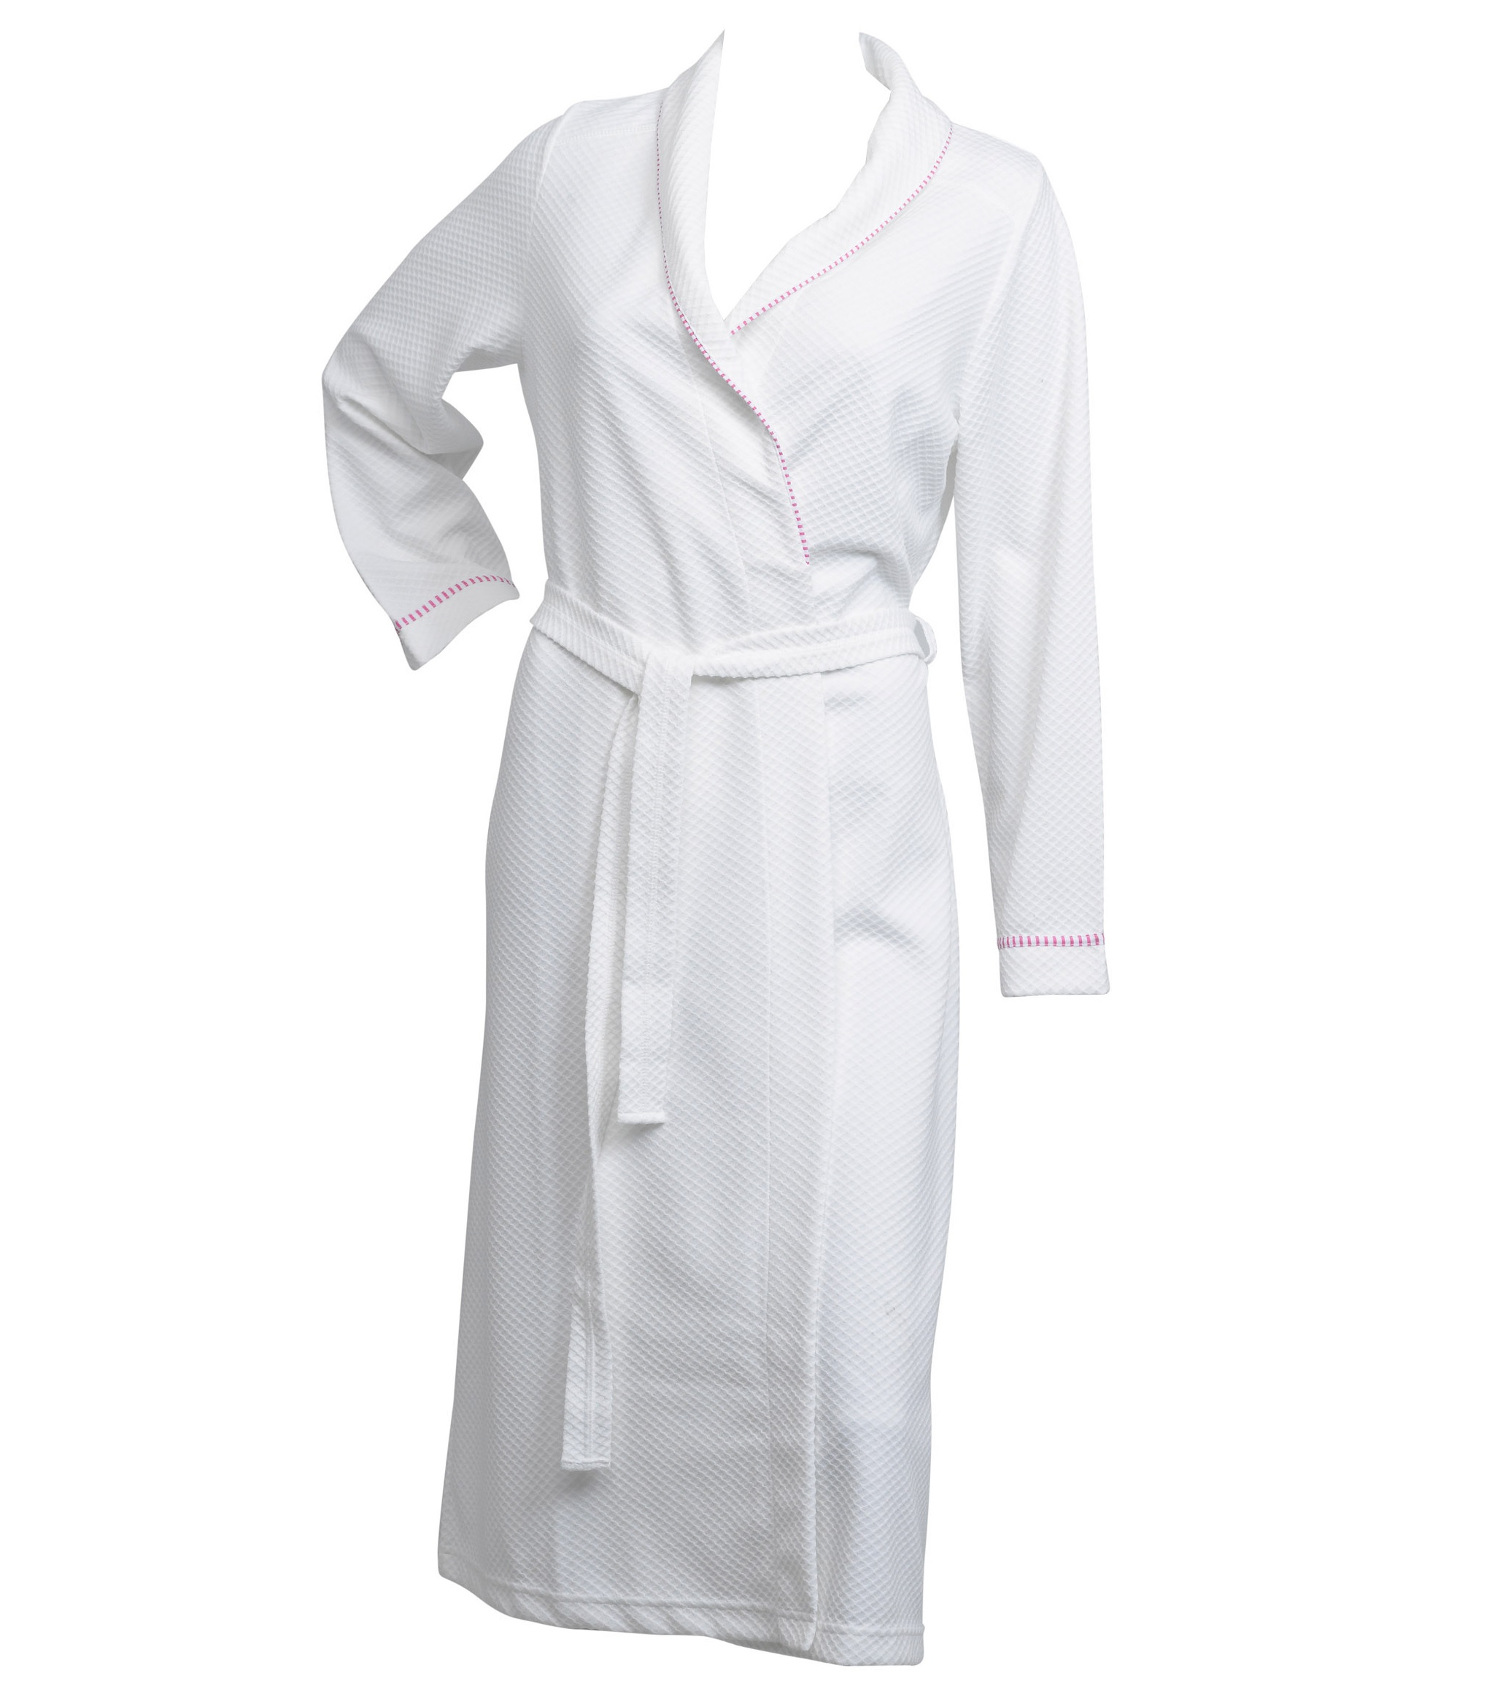 Ladies Lightweight White Waffle Dressing Gown 100% Cotton Striped ...